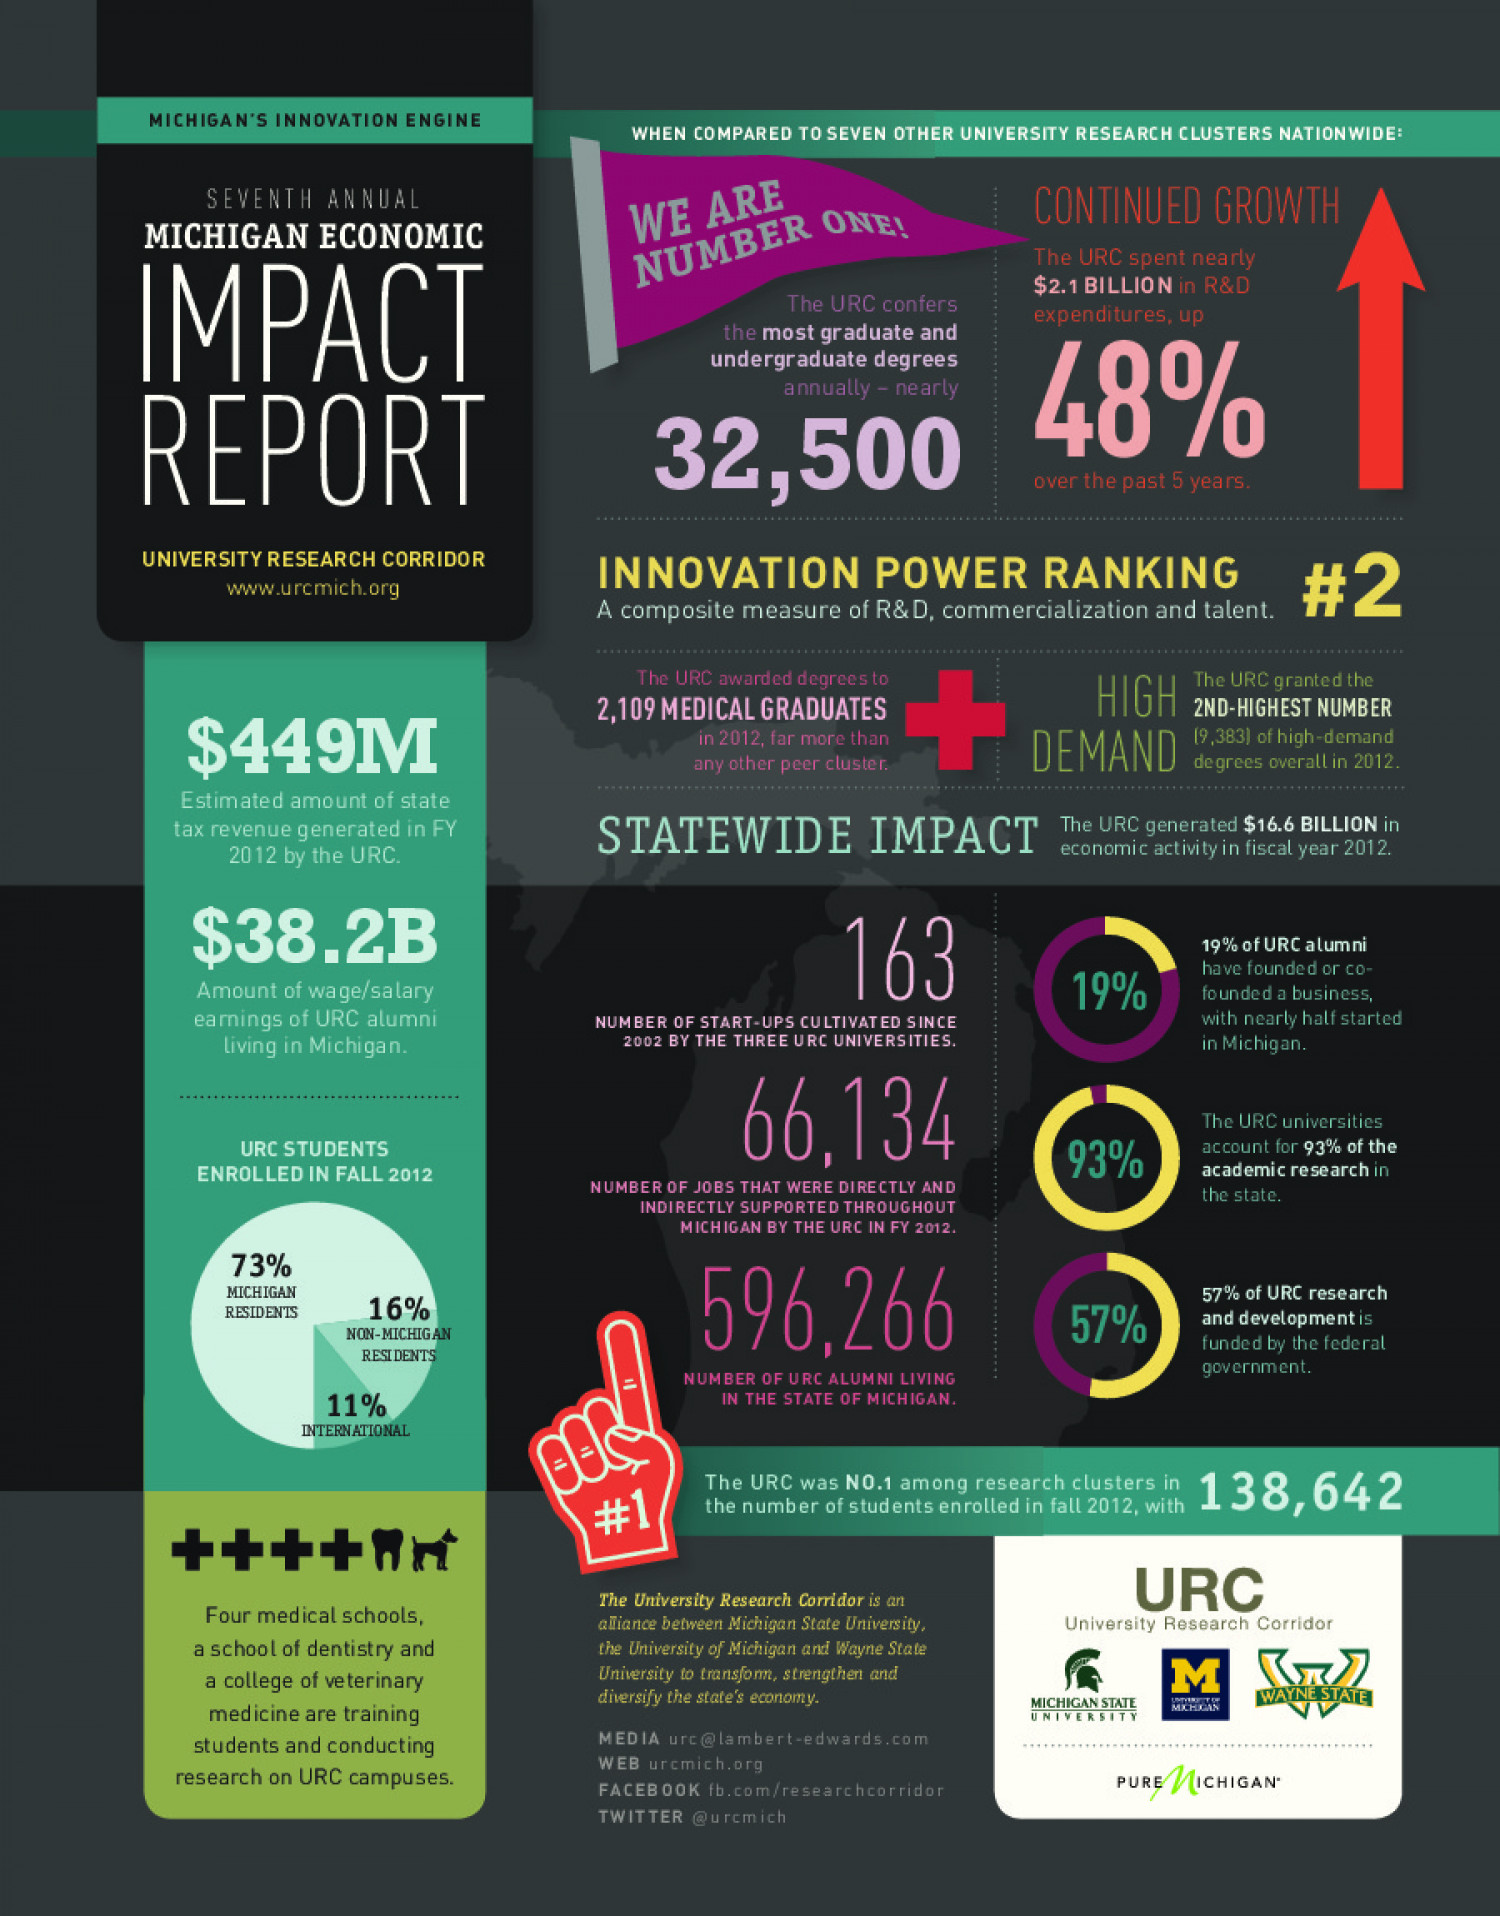 Michigan Economic Impact Report 2013 Infographic